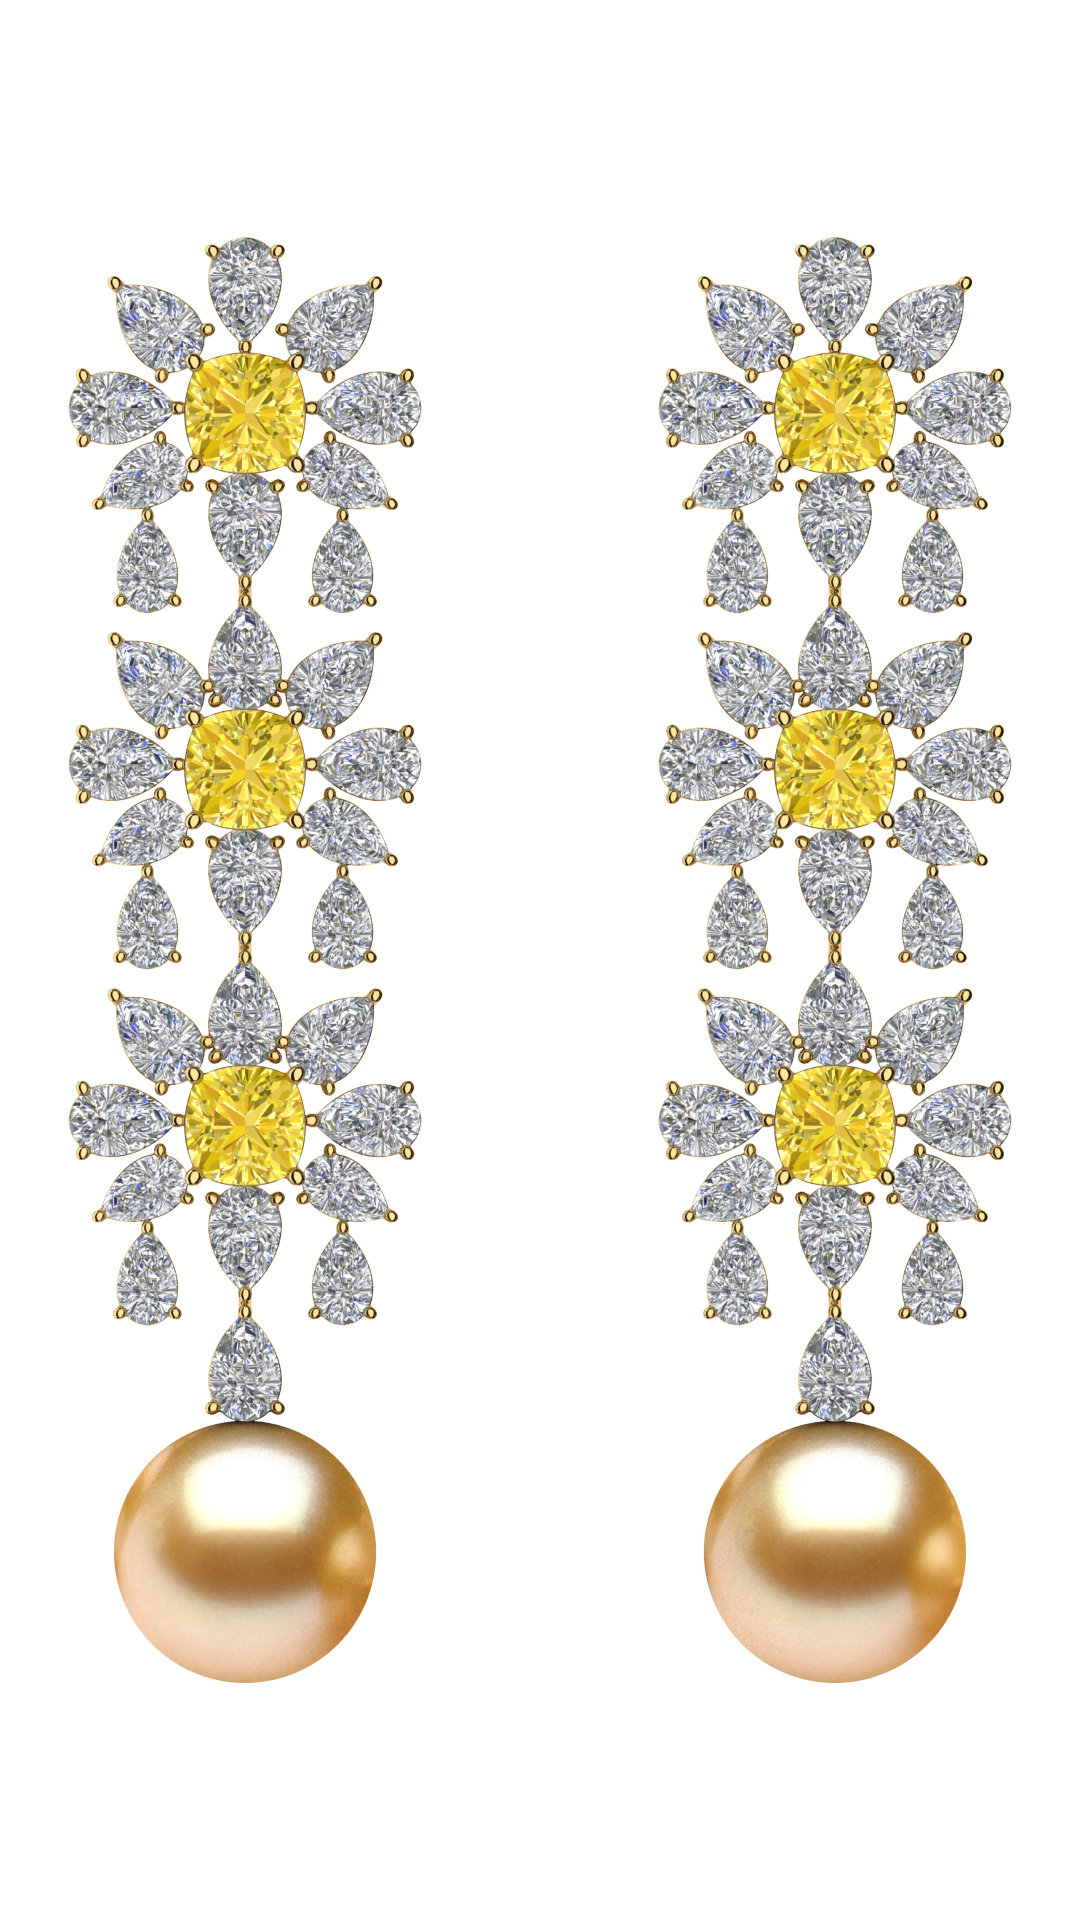 crown-jewel-earring-11mm-.58-inch-wide-2.38-inch-high2-frontview.jpg